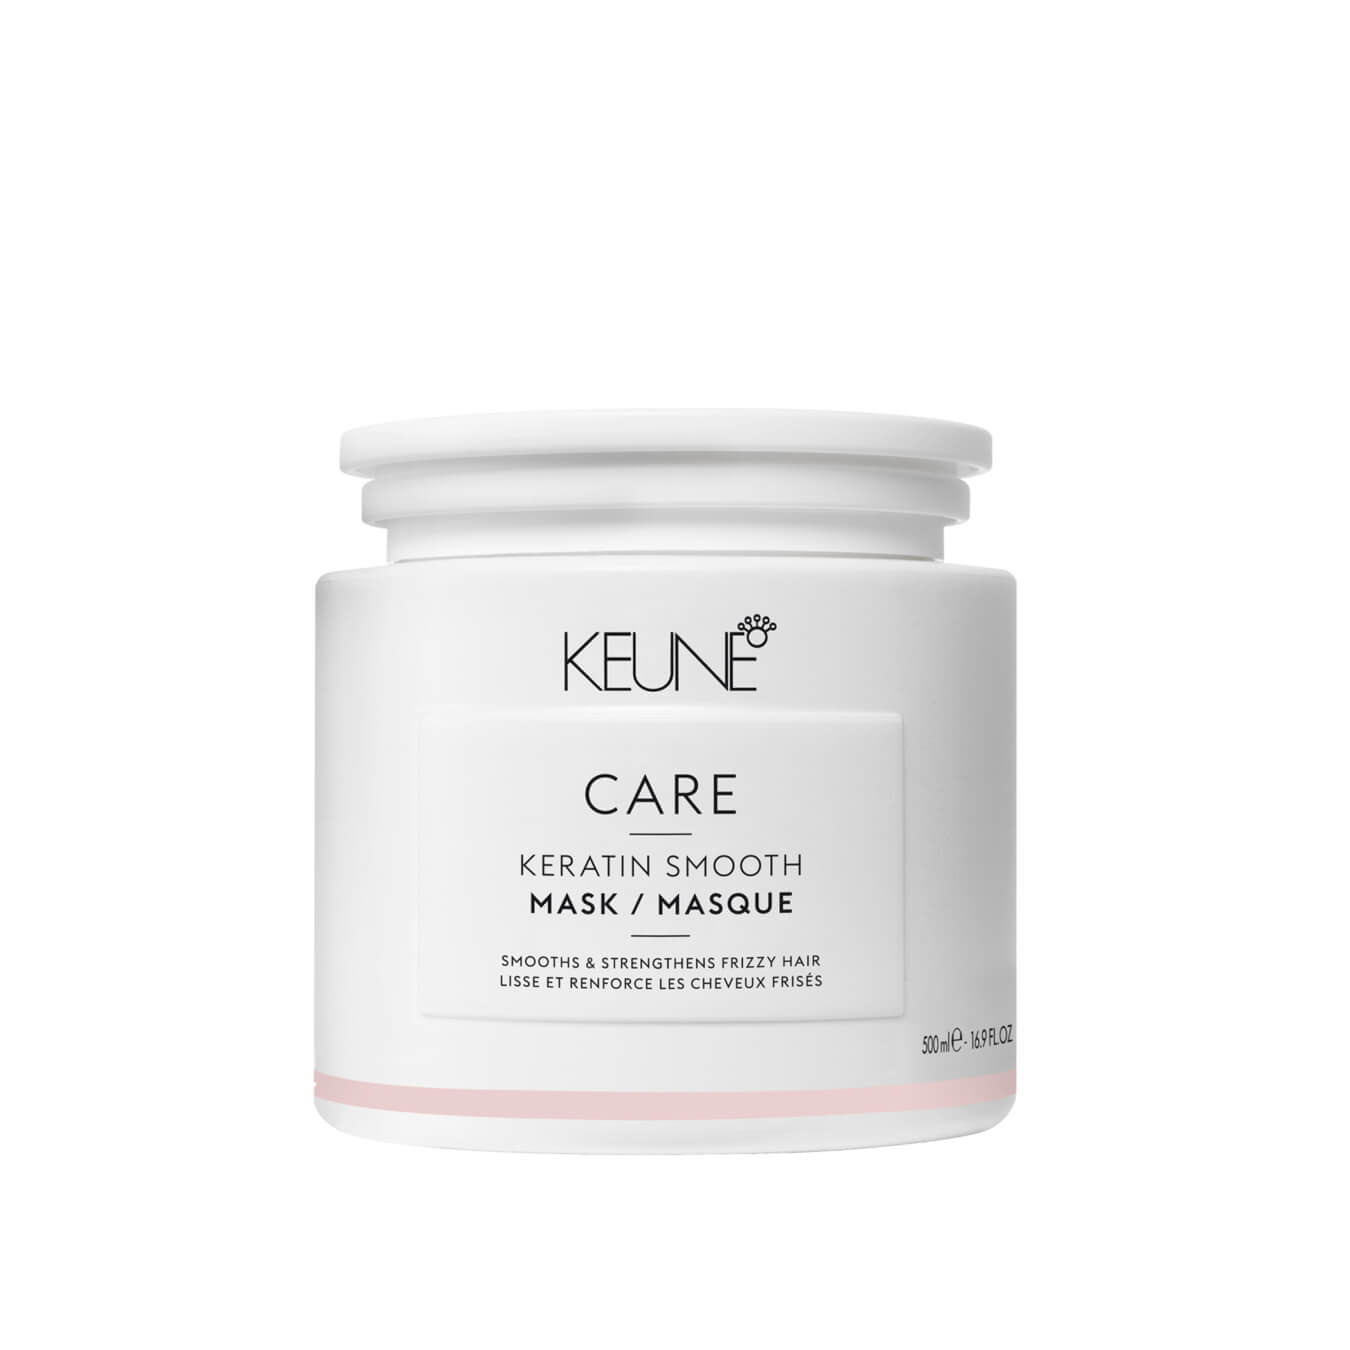 Kauf Keune Care Keratin Smooth Mask 500ml